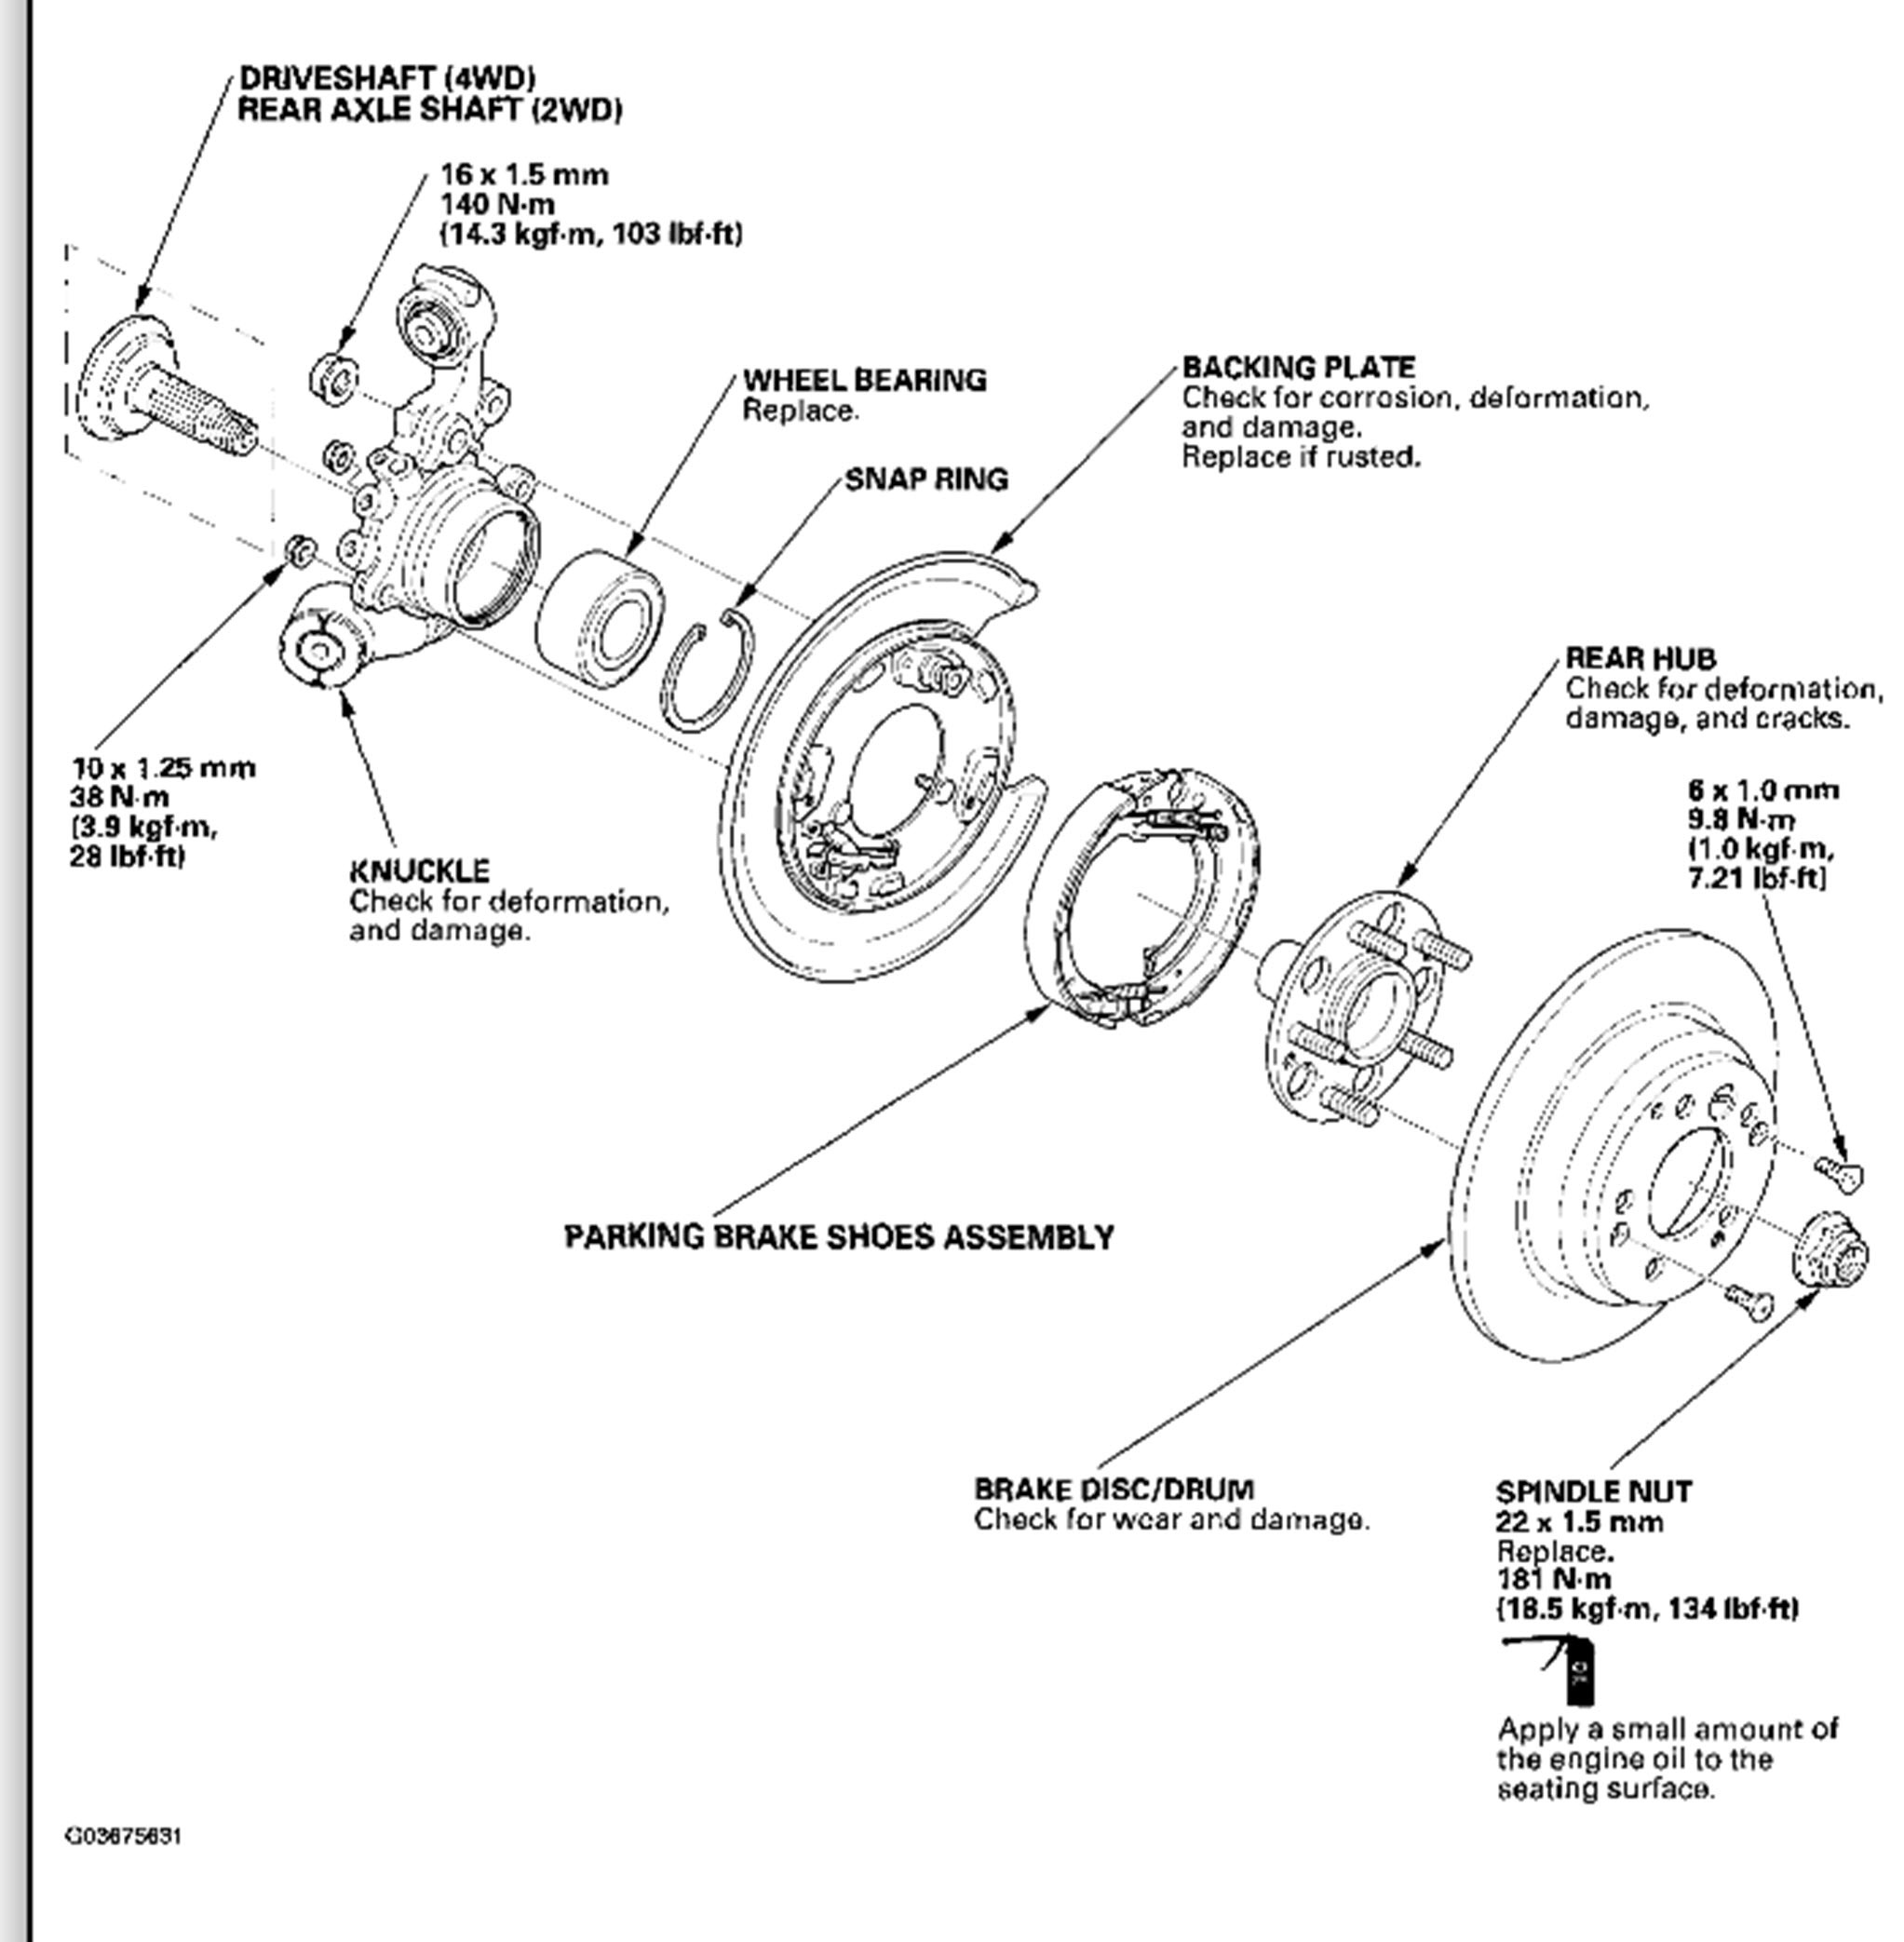 Honda Crv Rear Axle Diagram Free Download 2002 Ex4wd 5 Door 5mt Engine Wire Harness Cv How Do I Replace The Passenger Side In My